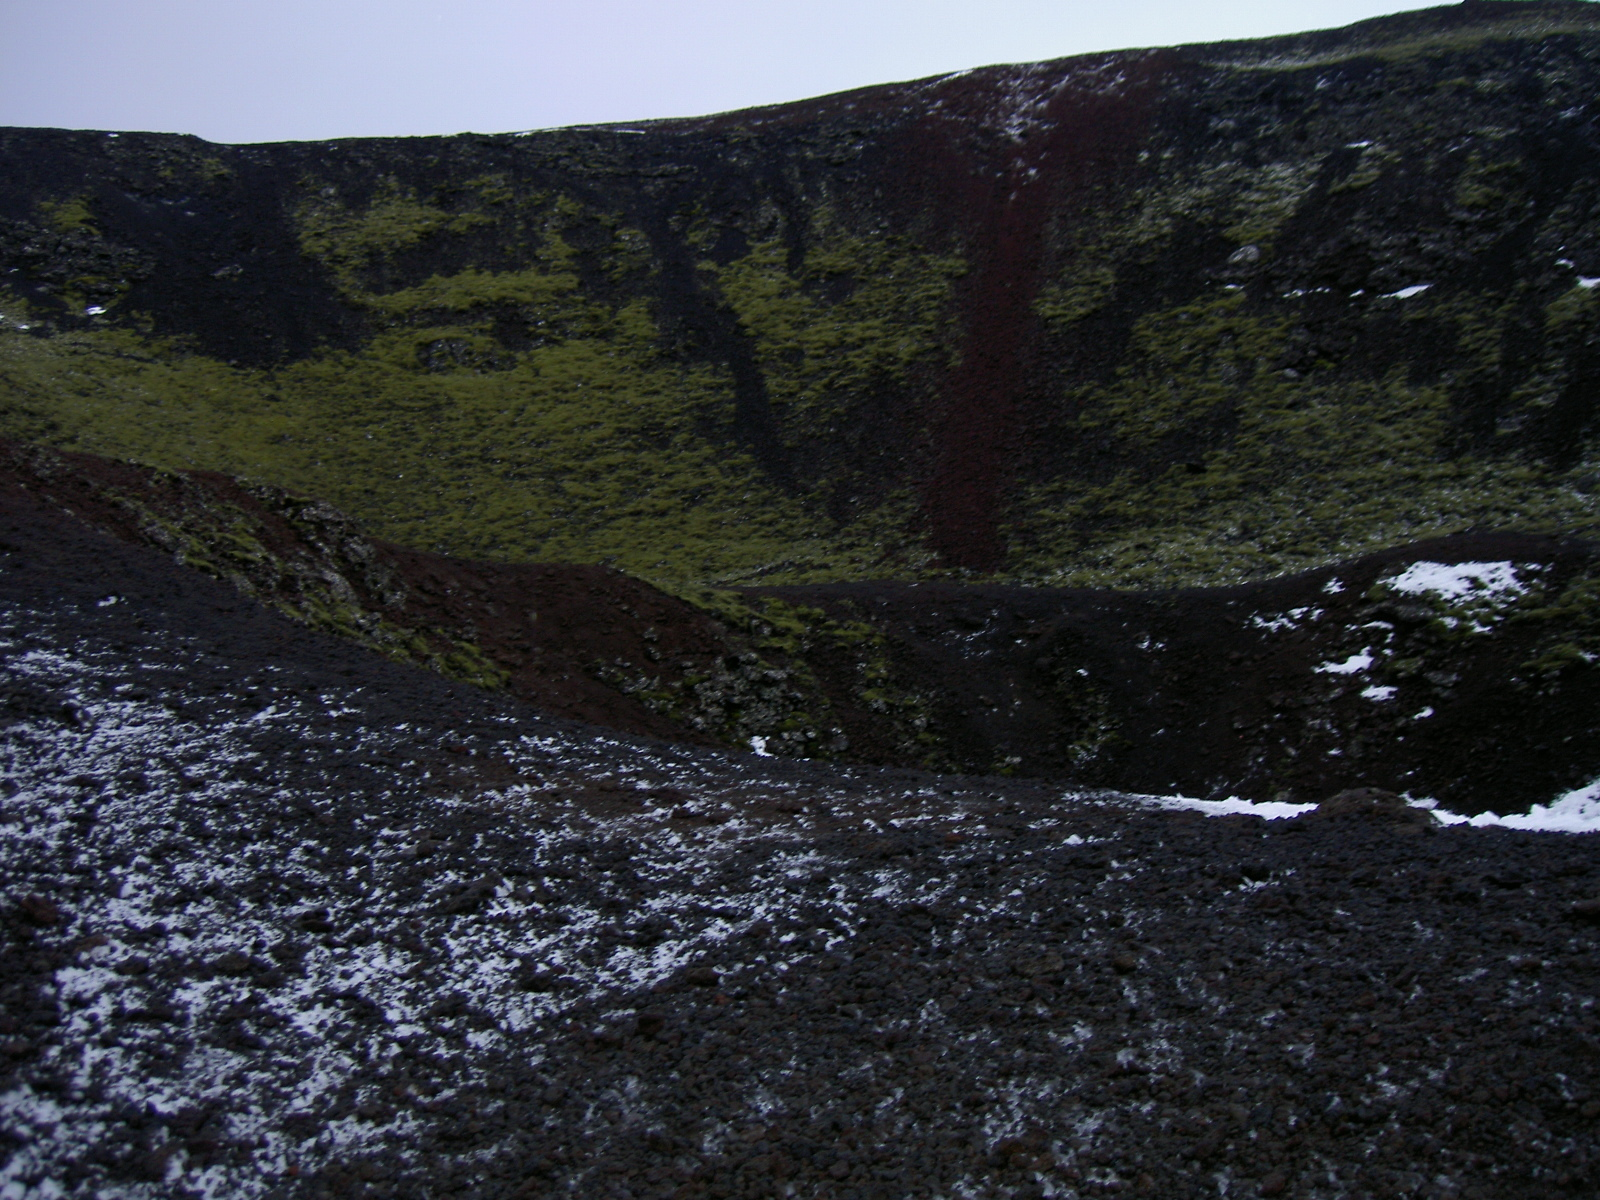 Looking down at the car while climbing toward Grabrok crater (purpose of page is to display an image)